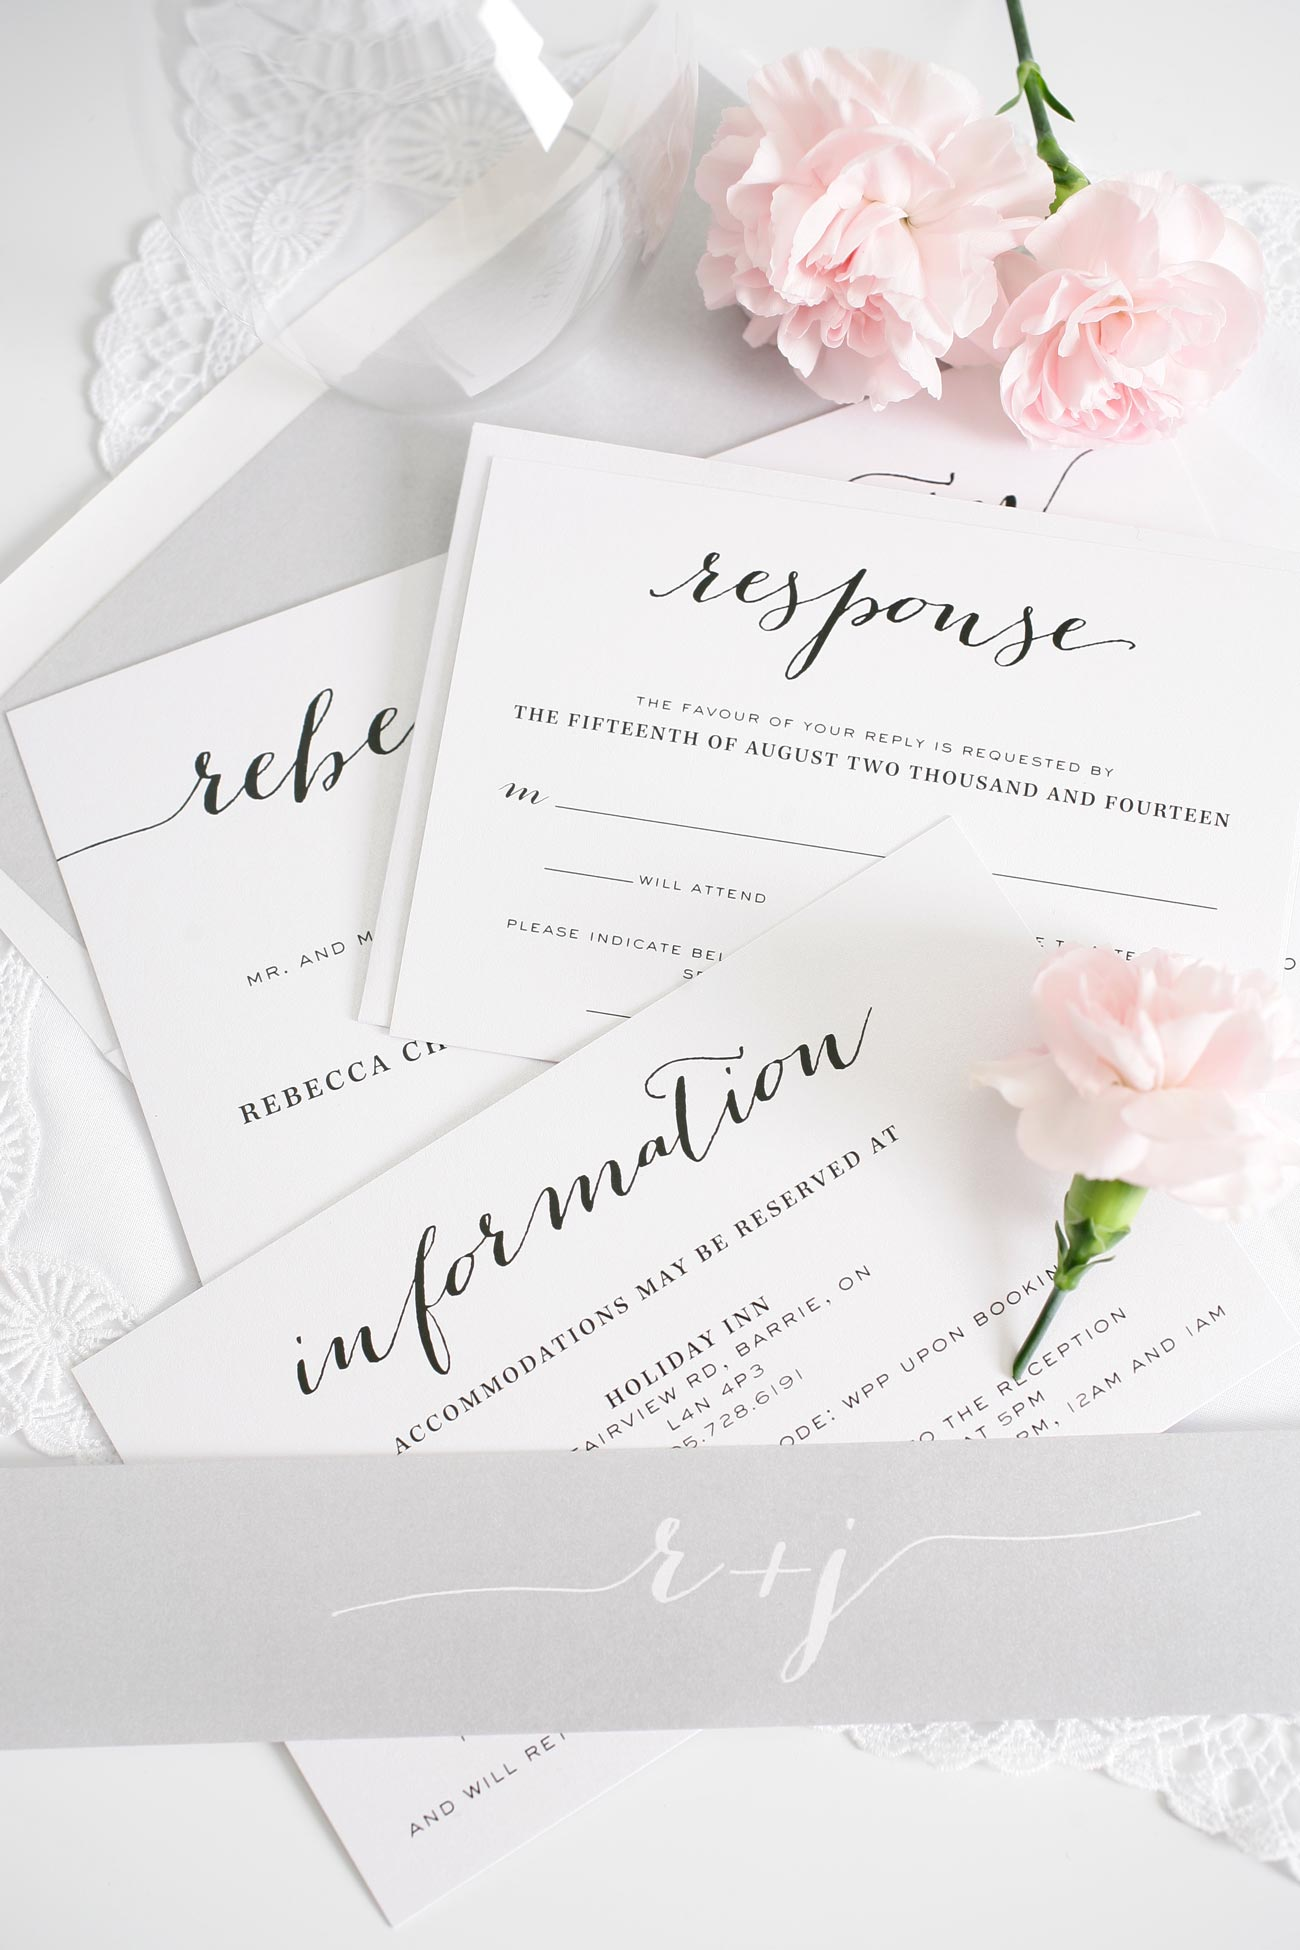 Silver Wedding Invitations with Modern Calligraphy